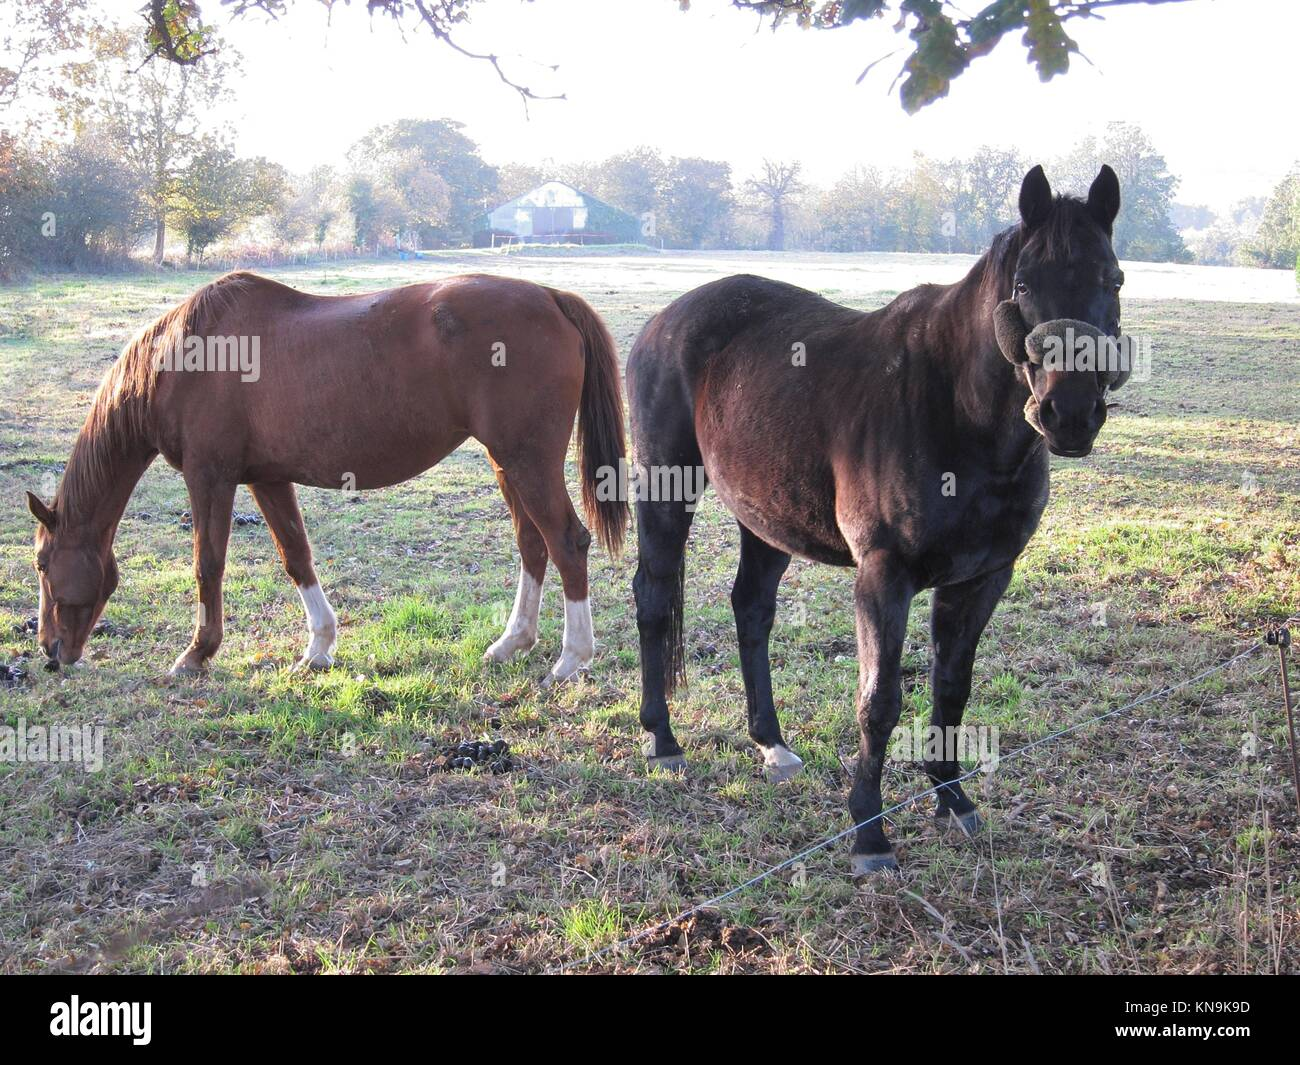 Two horses in Brittany in Brittany. - Stock Image